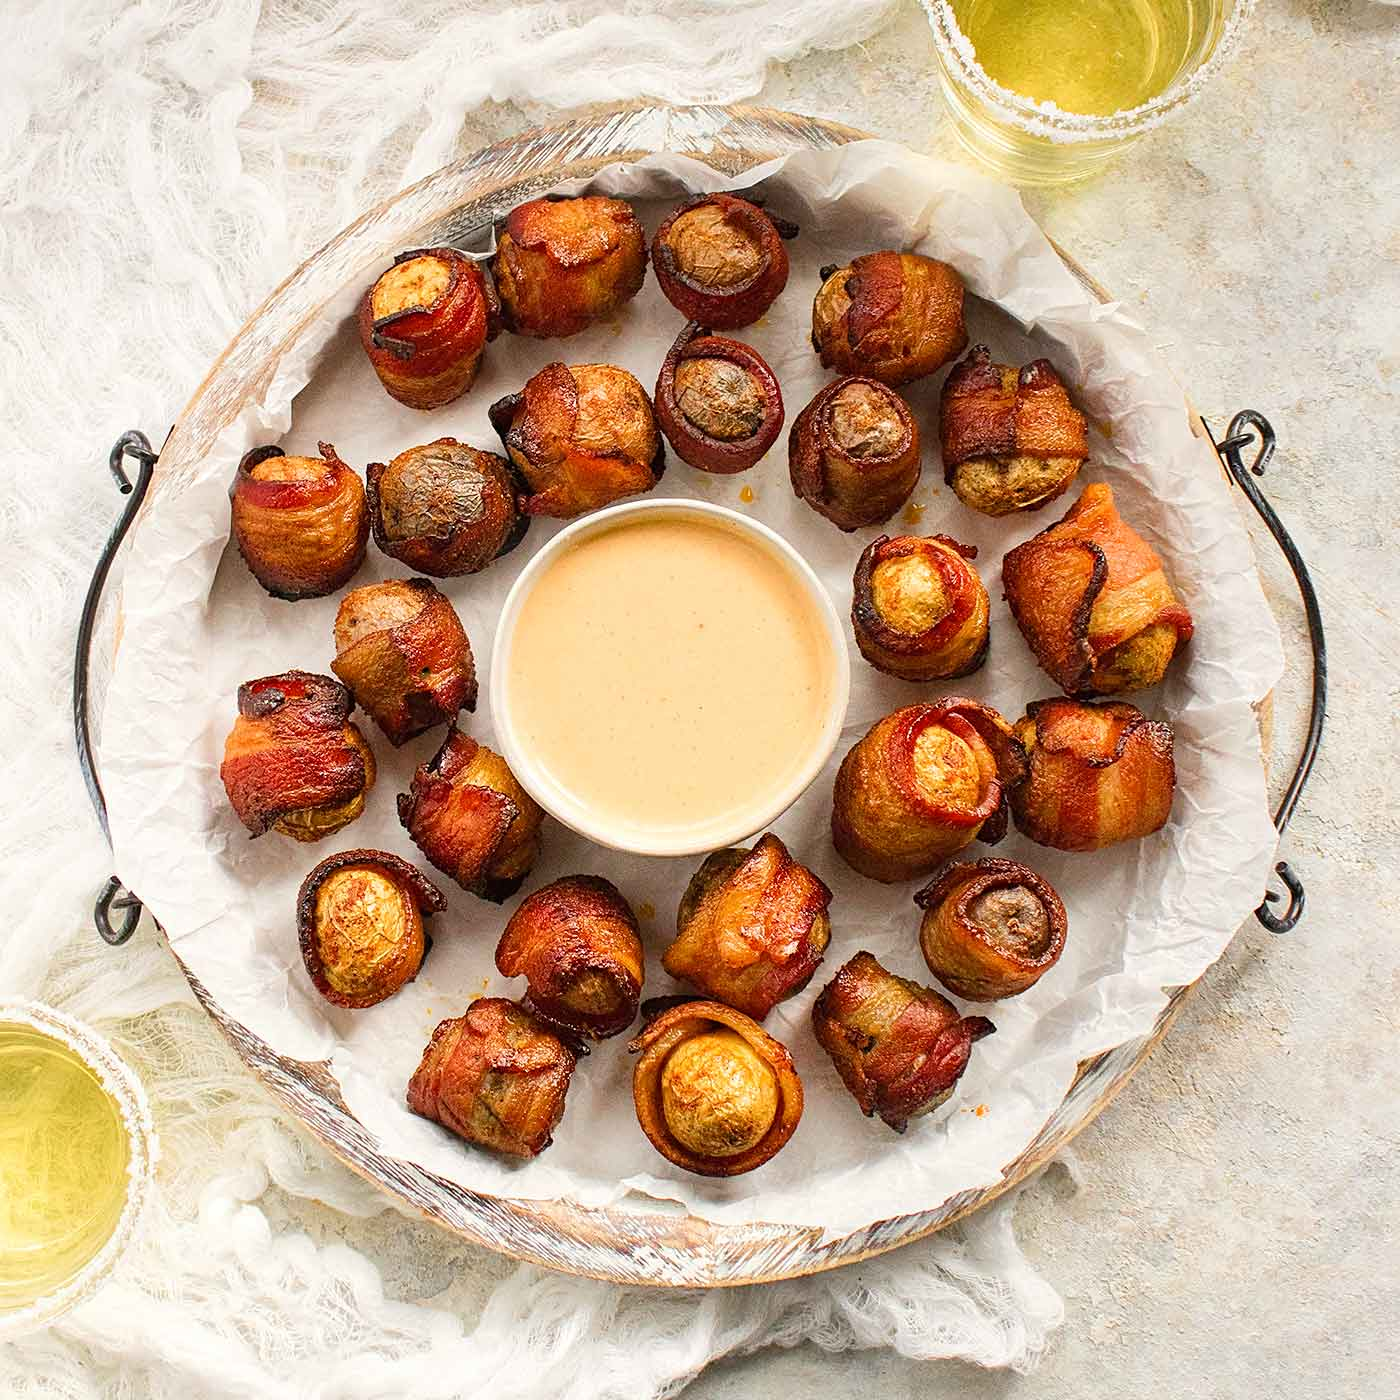 Bacon wrapped baby potatoes with BBQ ranch dipping sauce on a platter